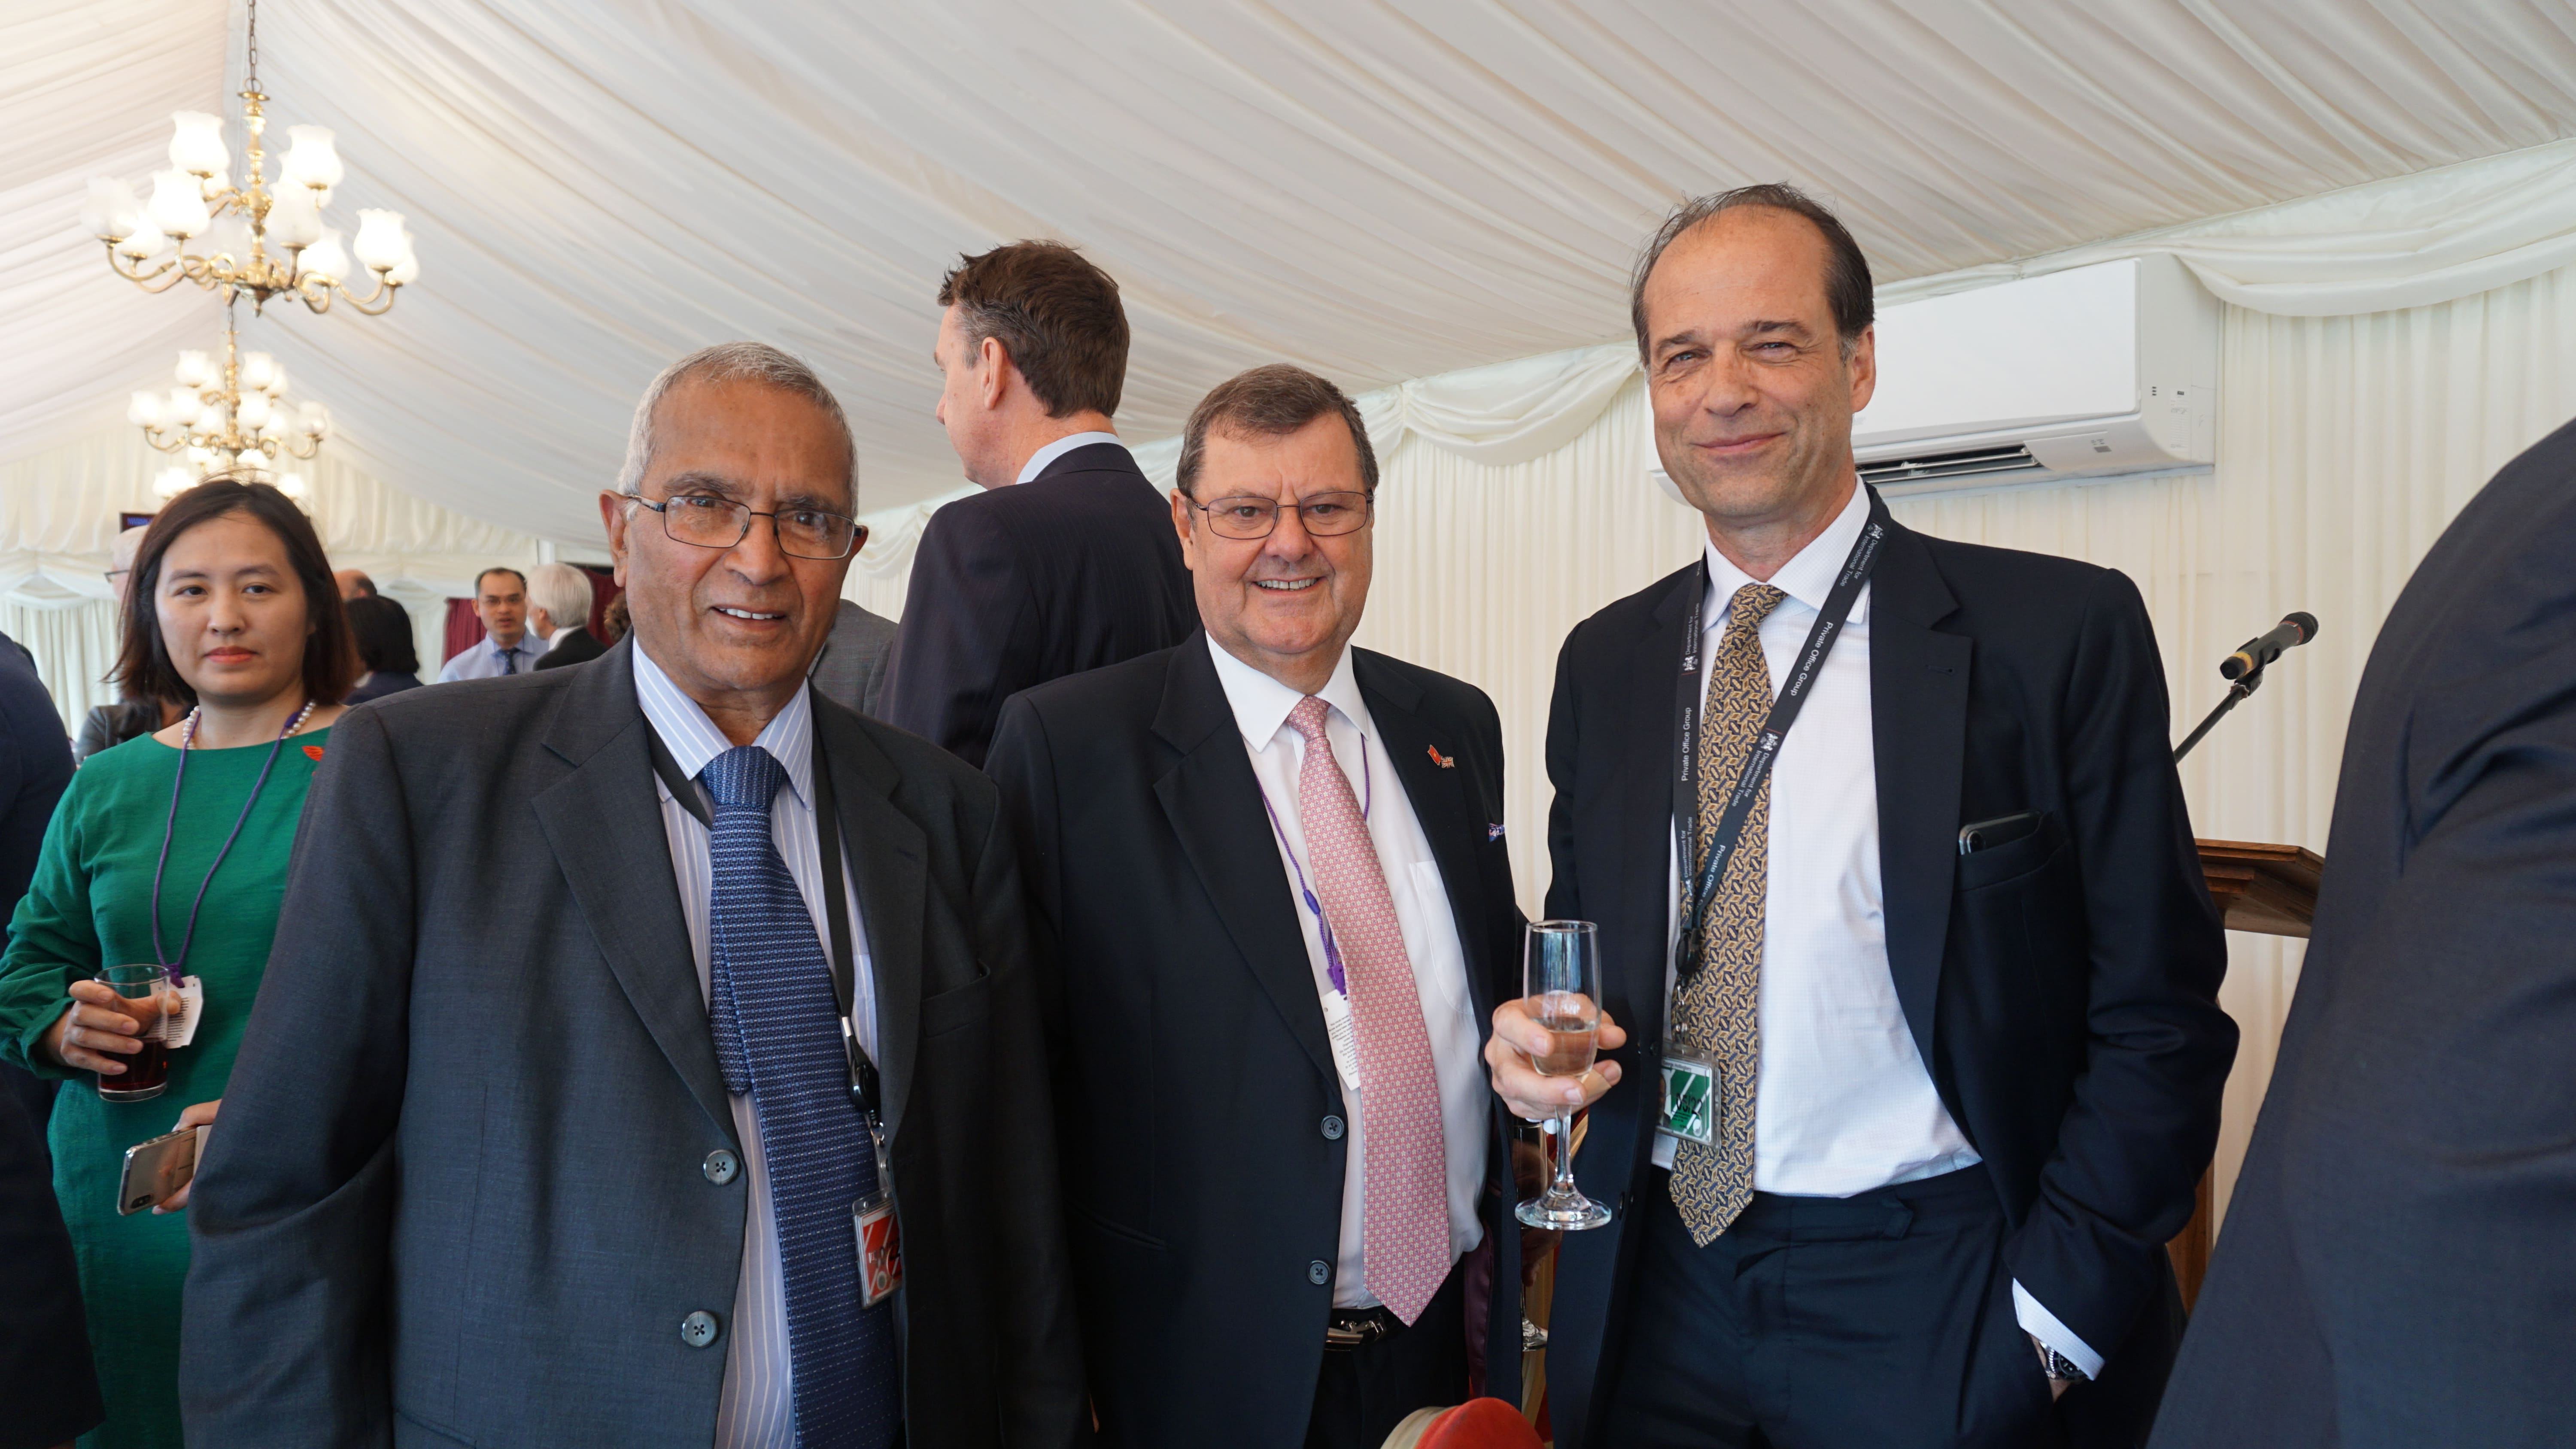 2019 Annual Luncheon At The House of Lords